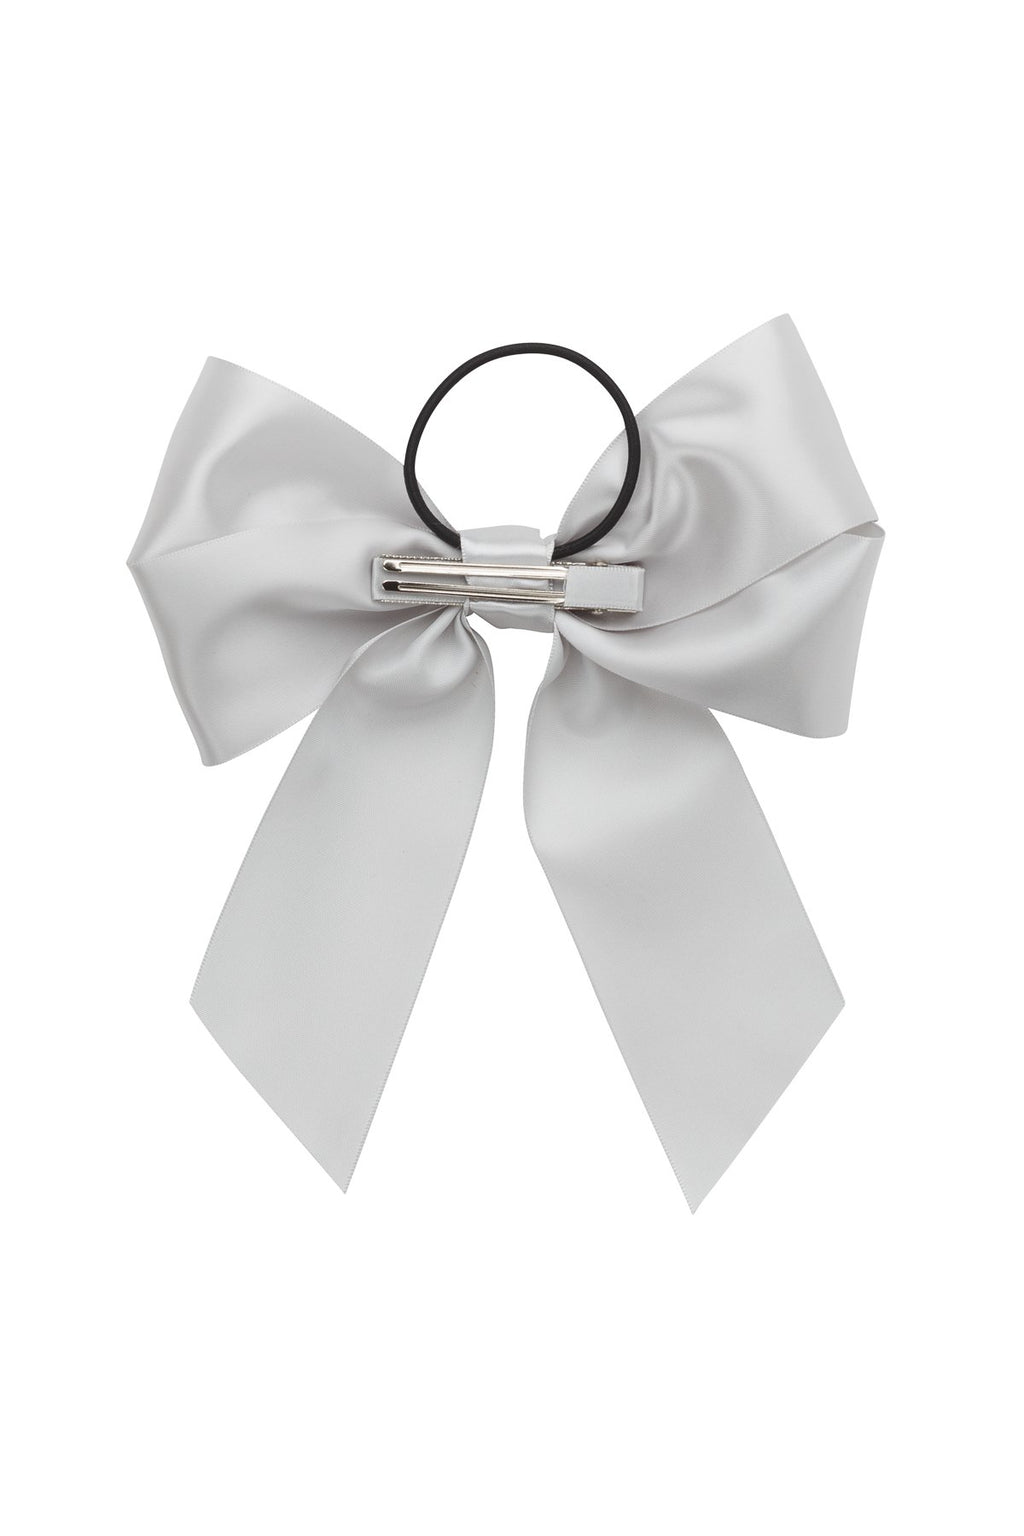 Oversized Bow Pony/Clip - Shell Grey - PROJECT 6, modest fashion